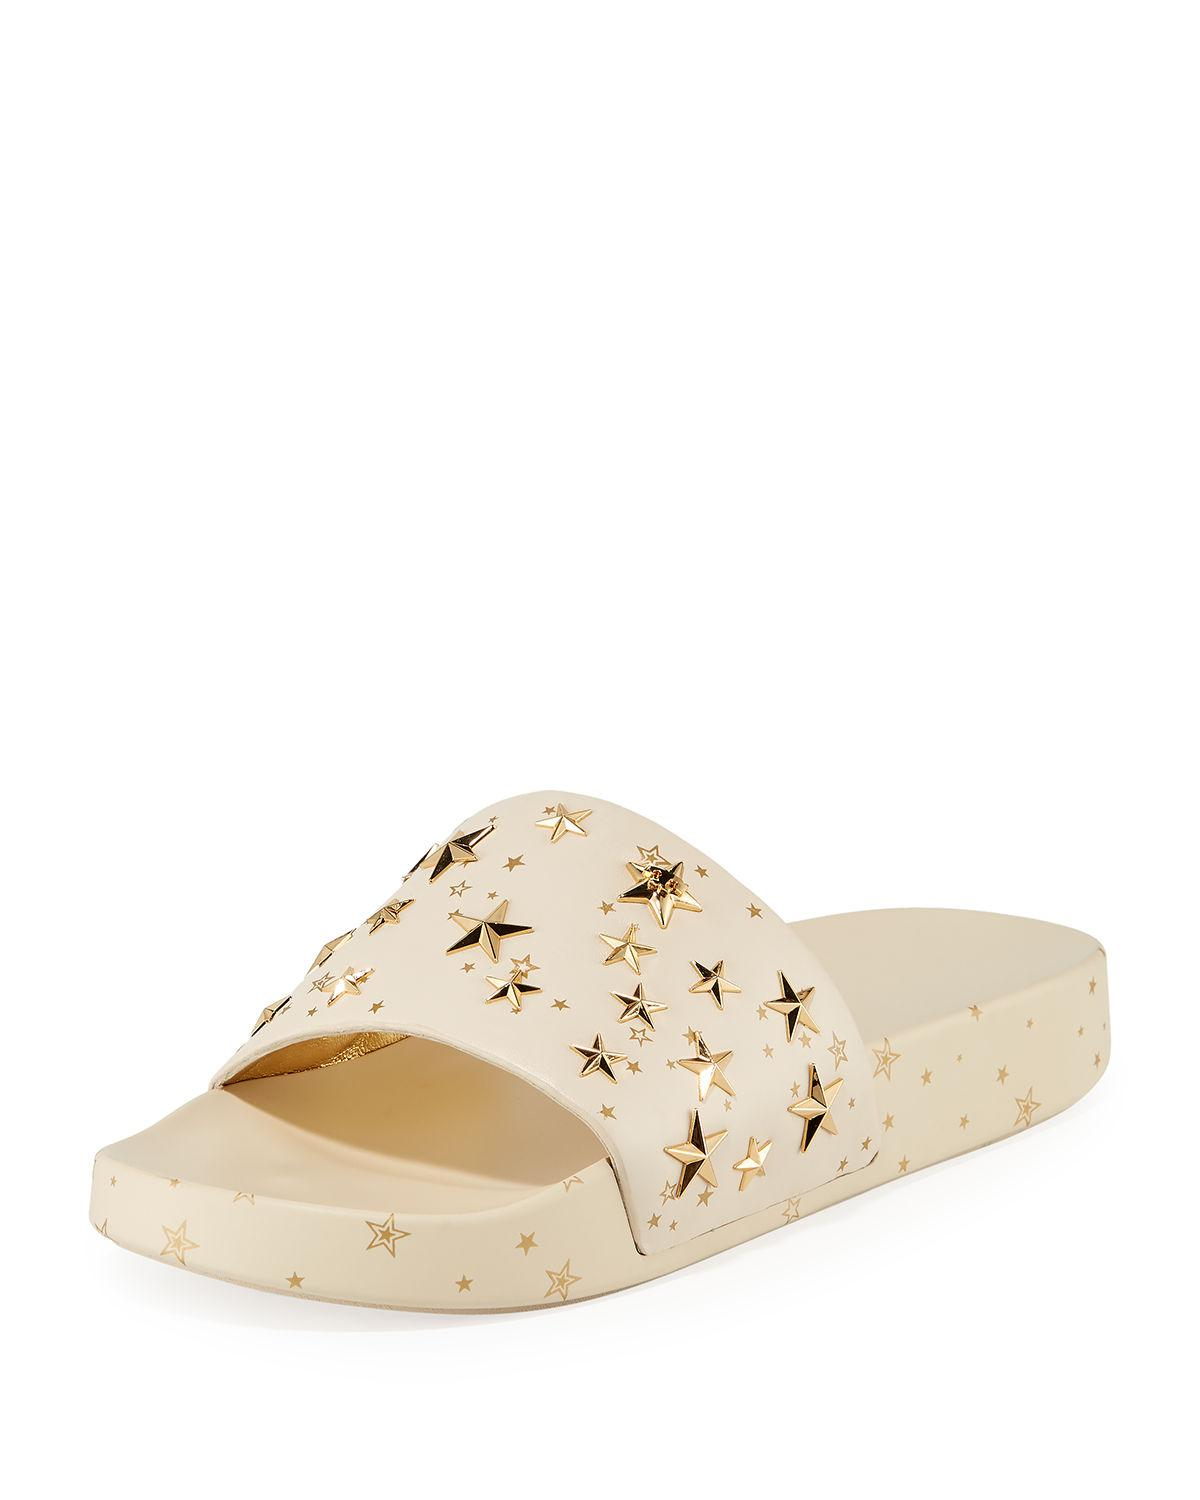 4192d6862865 Tory Burch Star Studded Leather Platform Slides In New Cream  Gold ...